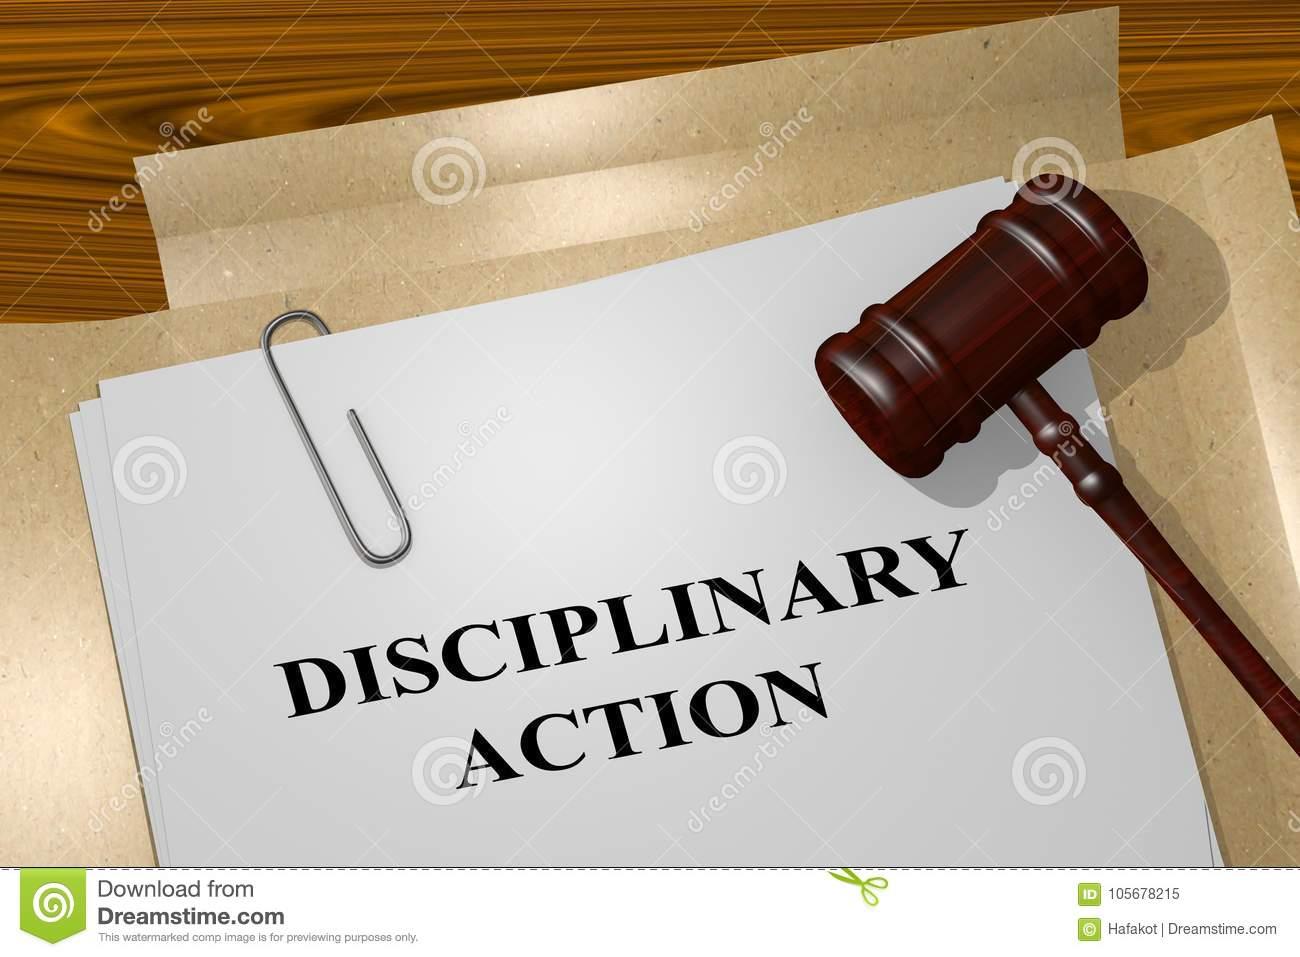 Gavel clipart disciplinary action, Gavel disciplinary action Transparent  FREE for download on WebStockReview 2020